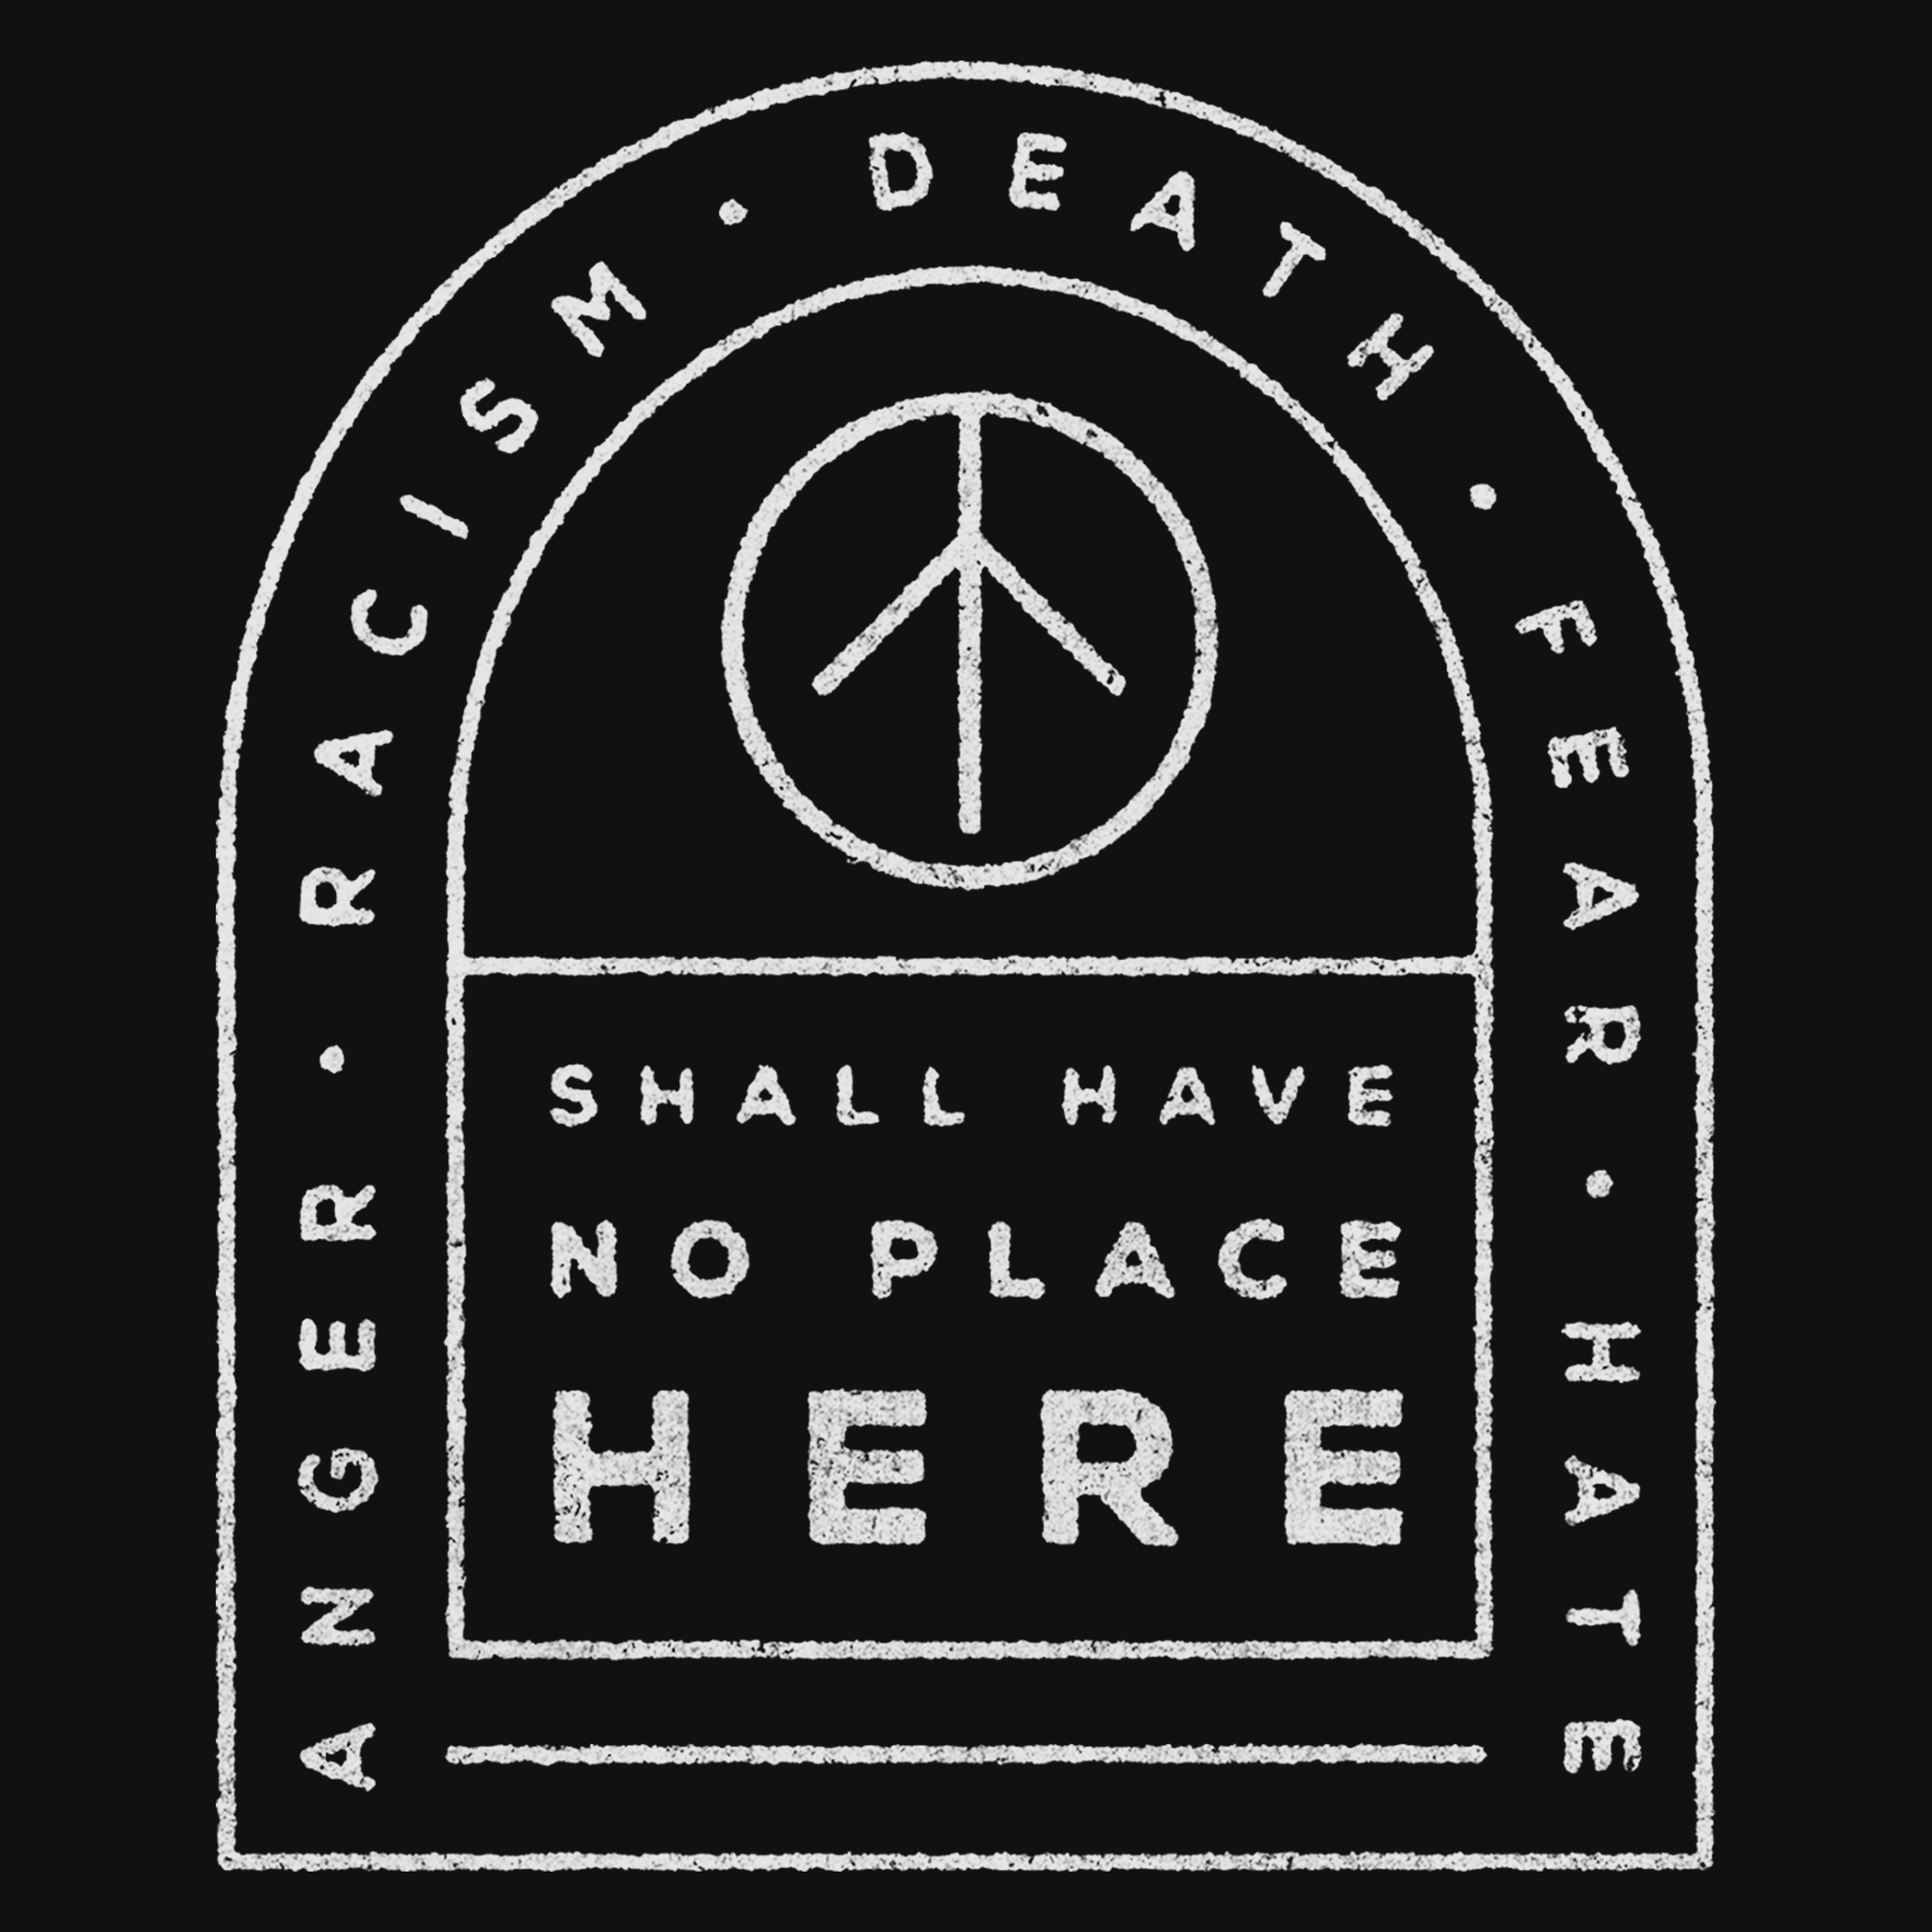 NO PLACE HERE